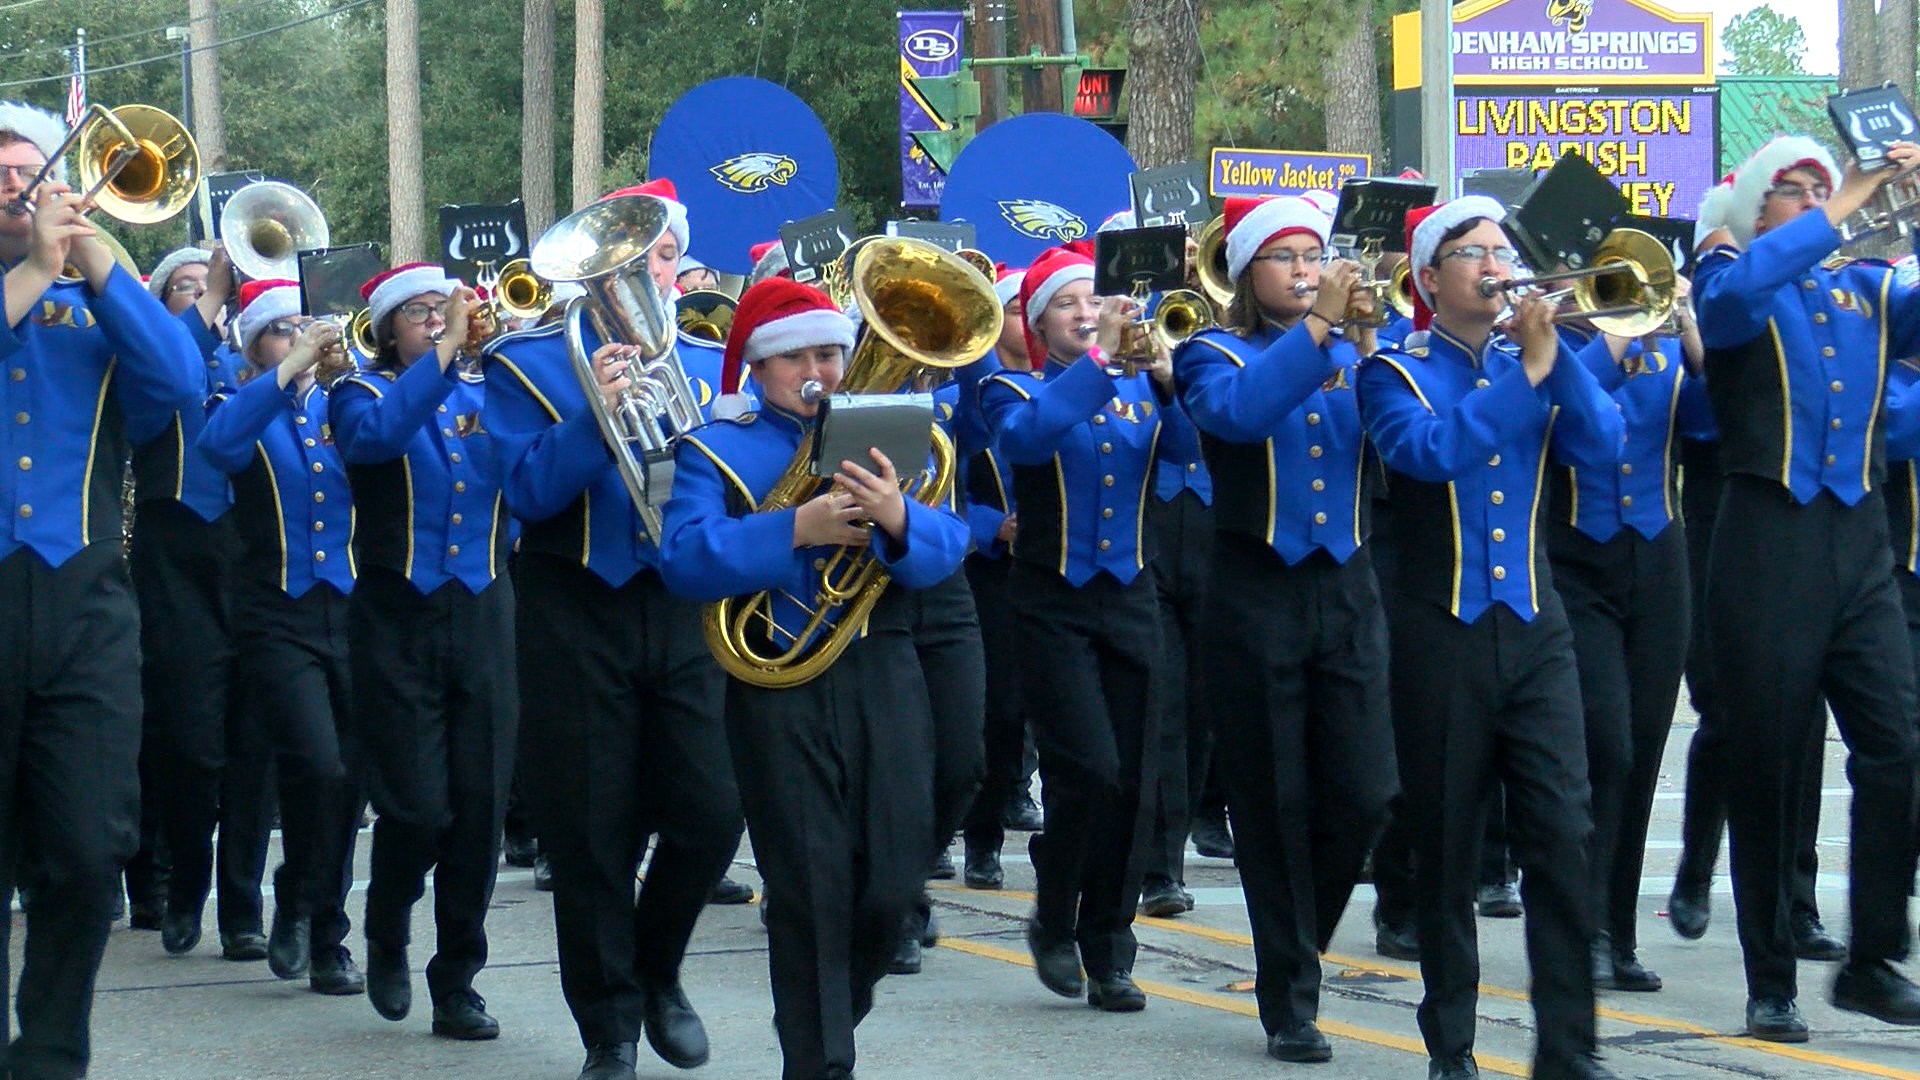 2020 Denham Springs Christmas Parade Denham Springs Christmas Parade draws hundreds of families